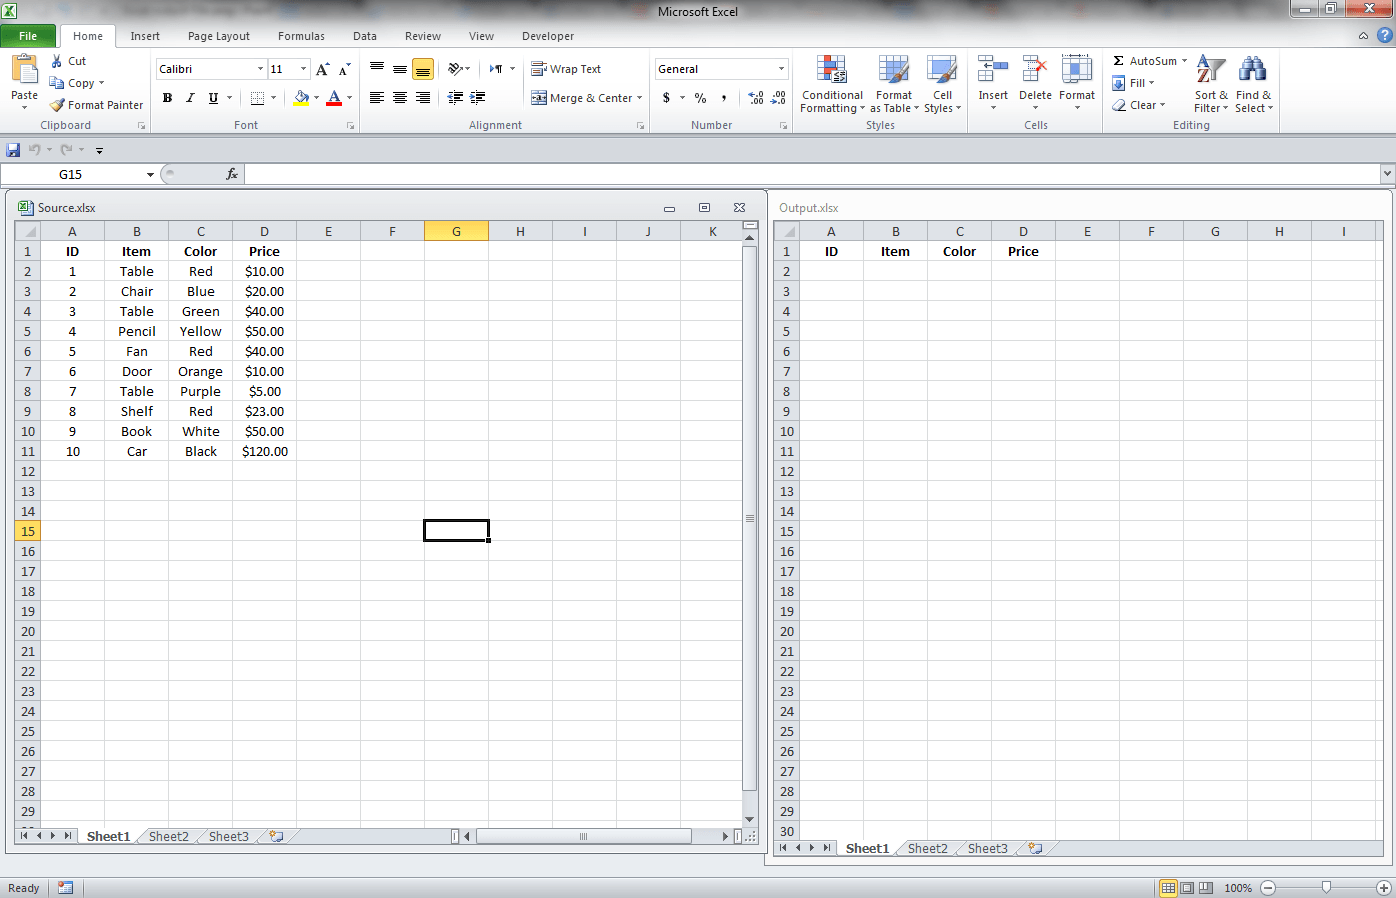 Workbooks excel.workbooks.open : Excel, Getting Data From Another Workbook Through Links - VBA and ...